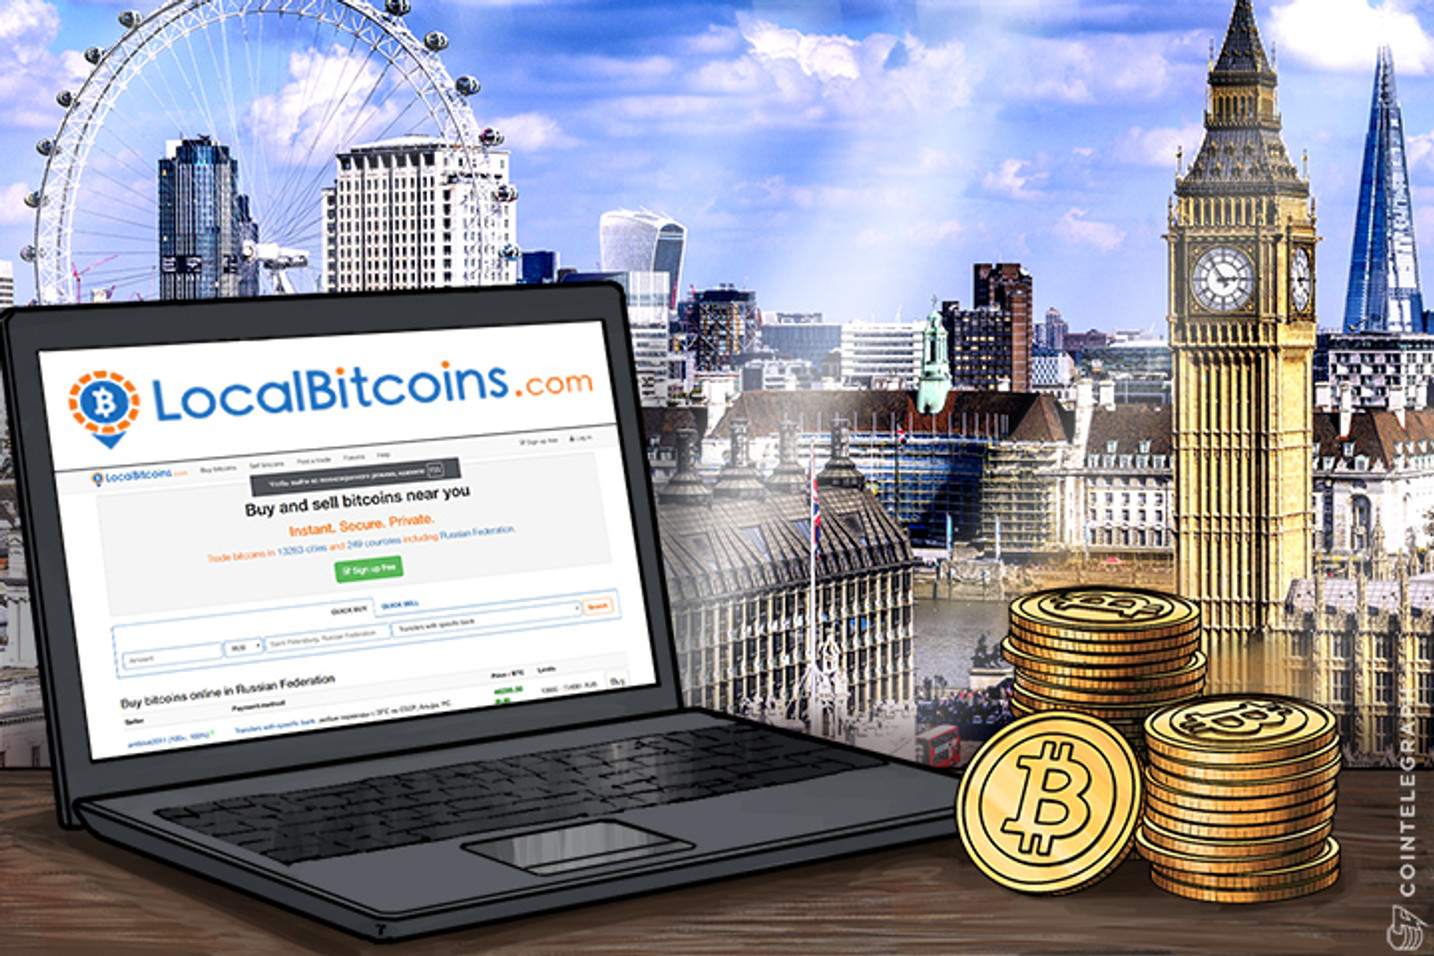 LocalBitcoins Halves UK Bitcoin Trading Fees To Help Users Get Out Of The Pound